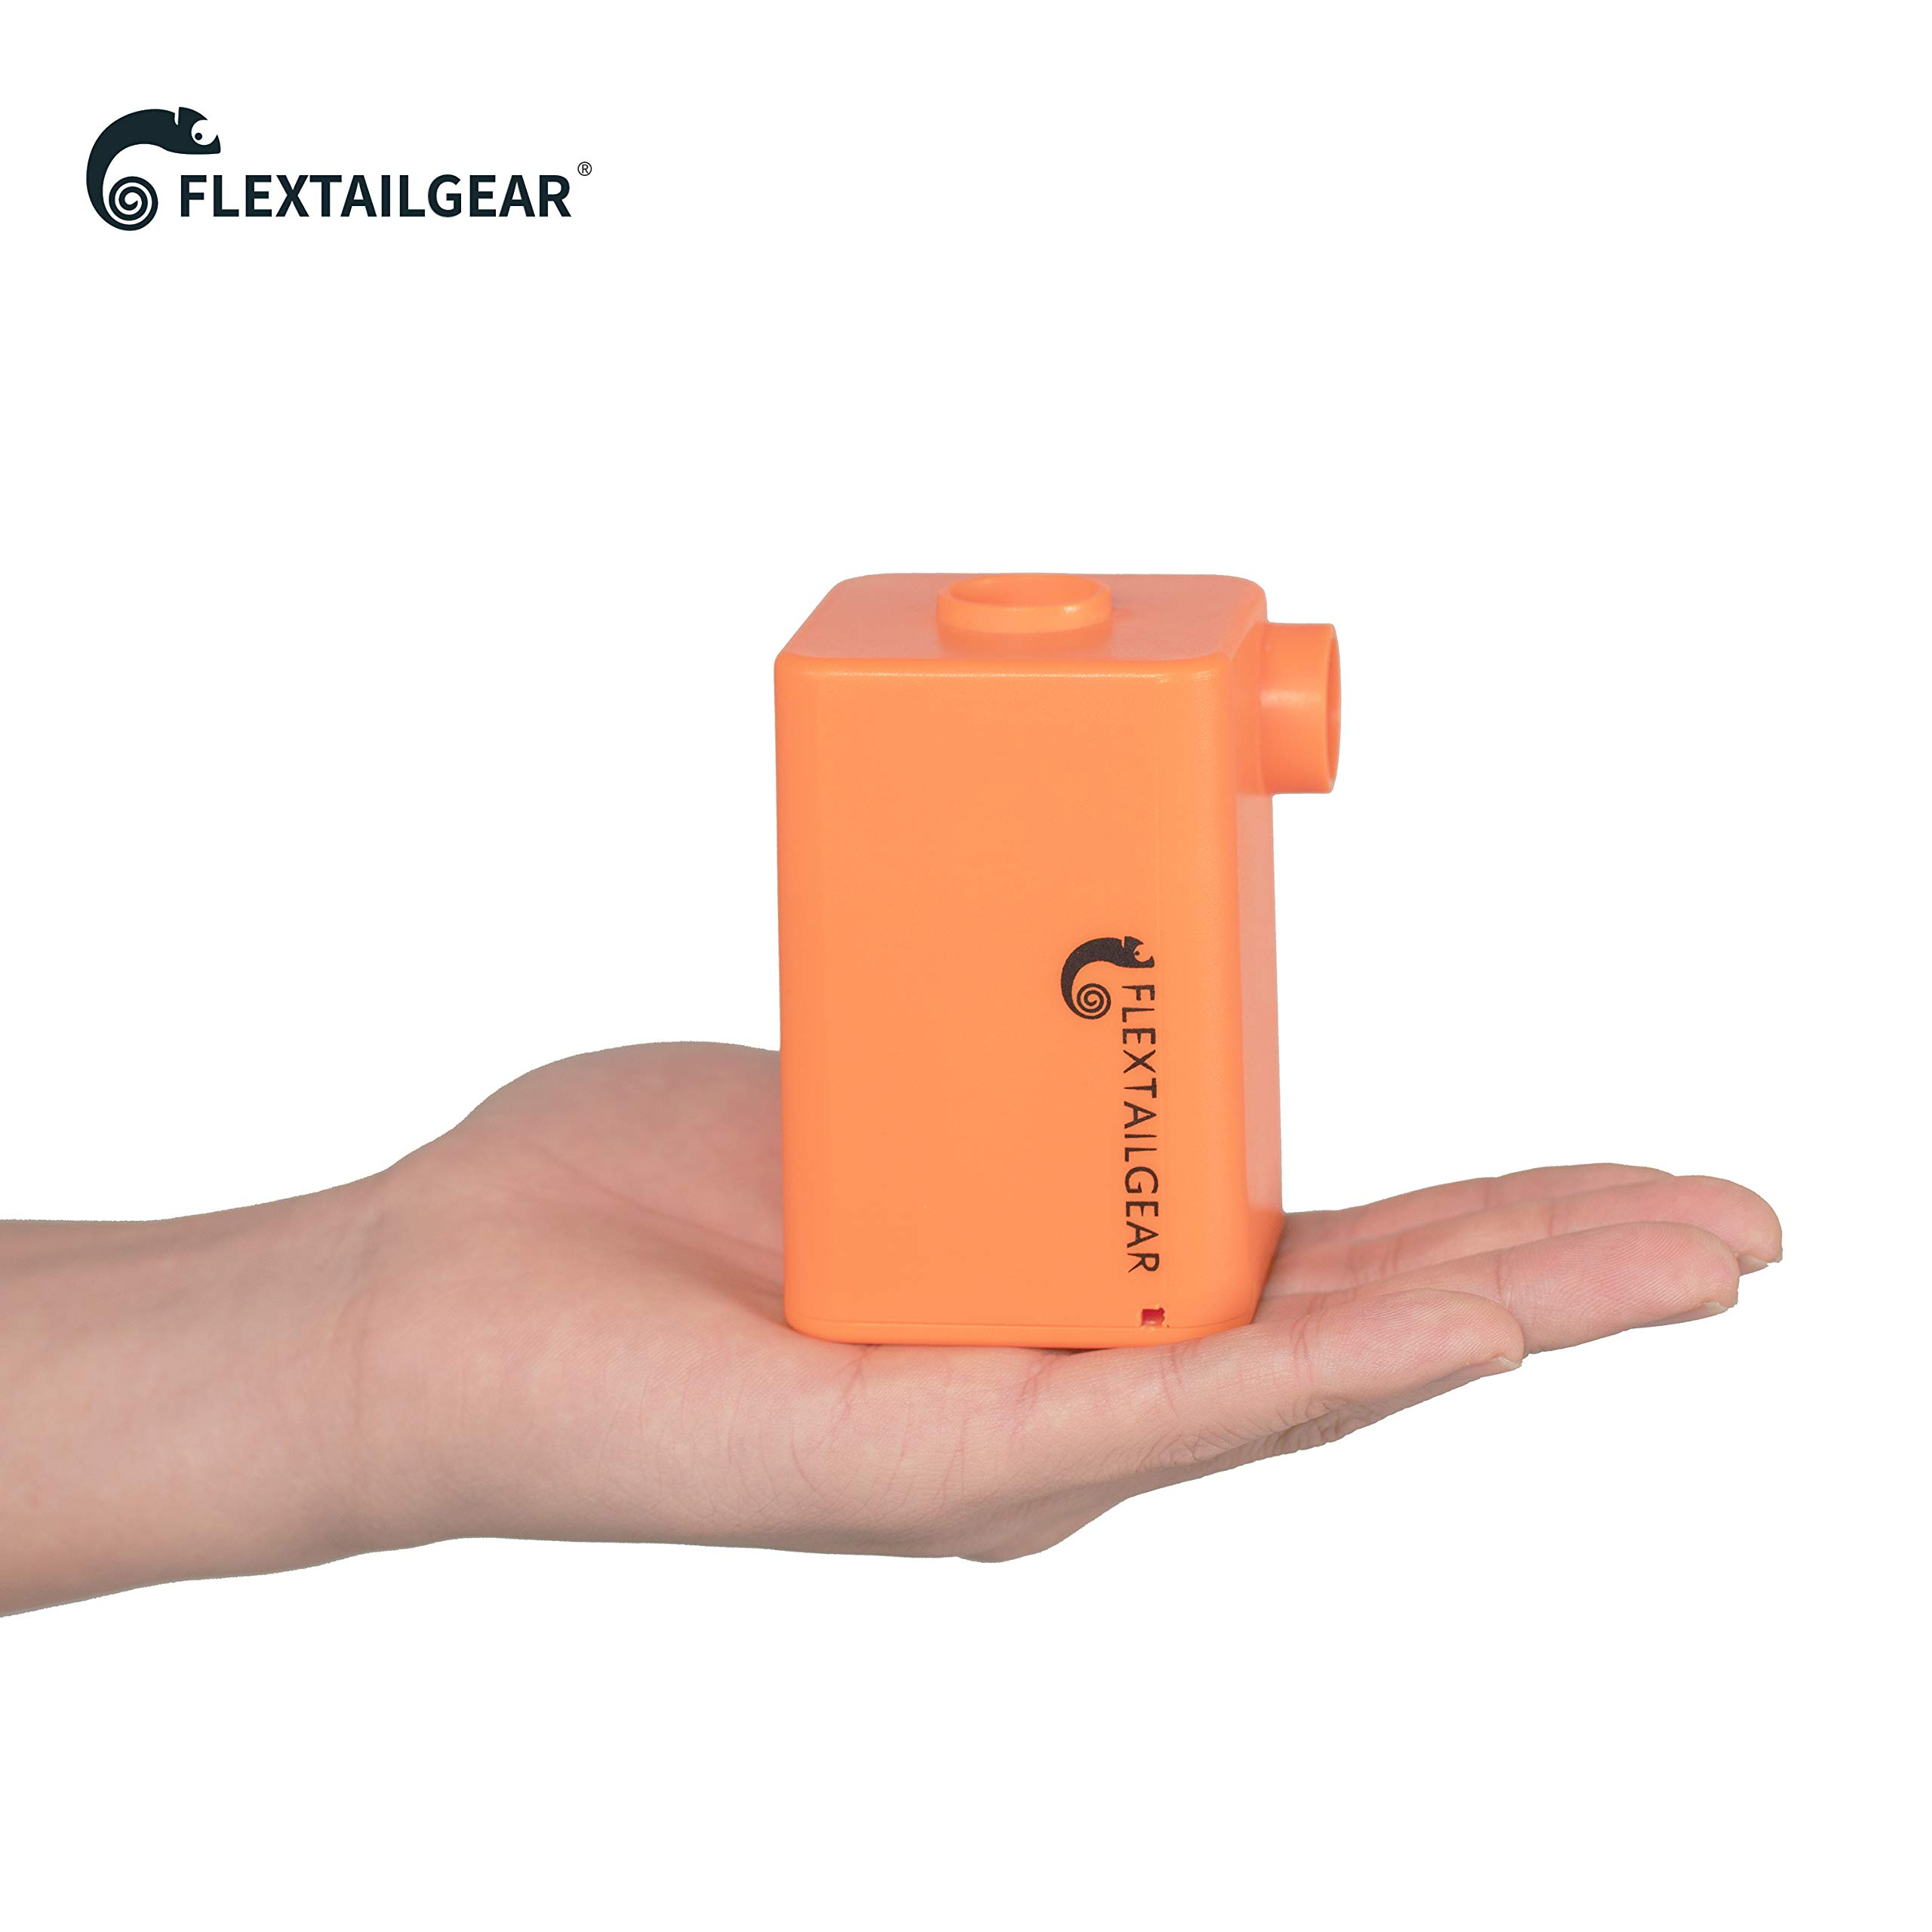 FLEXTAILGEAR Portable Air Pump with 3600mAh Battery USB Rechargeable Lightest Air Pump to Quick Inflate Deflate for Pool Floats Air Bed Air Mattress Swimming Ring (Orange)